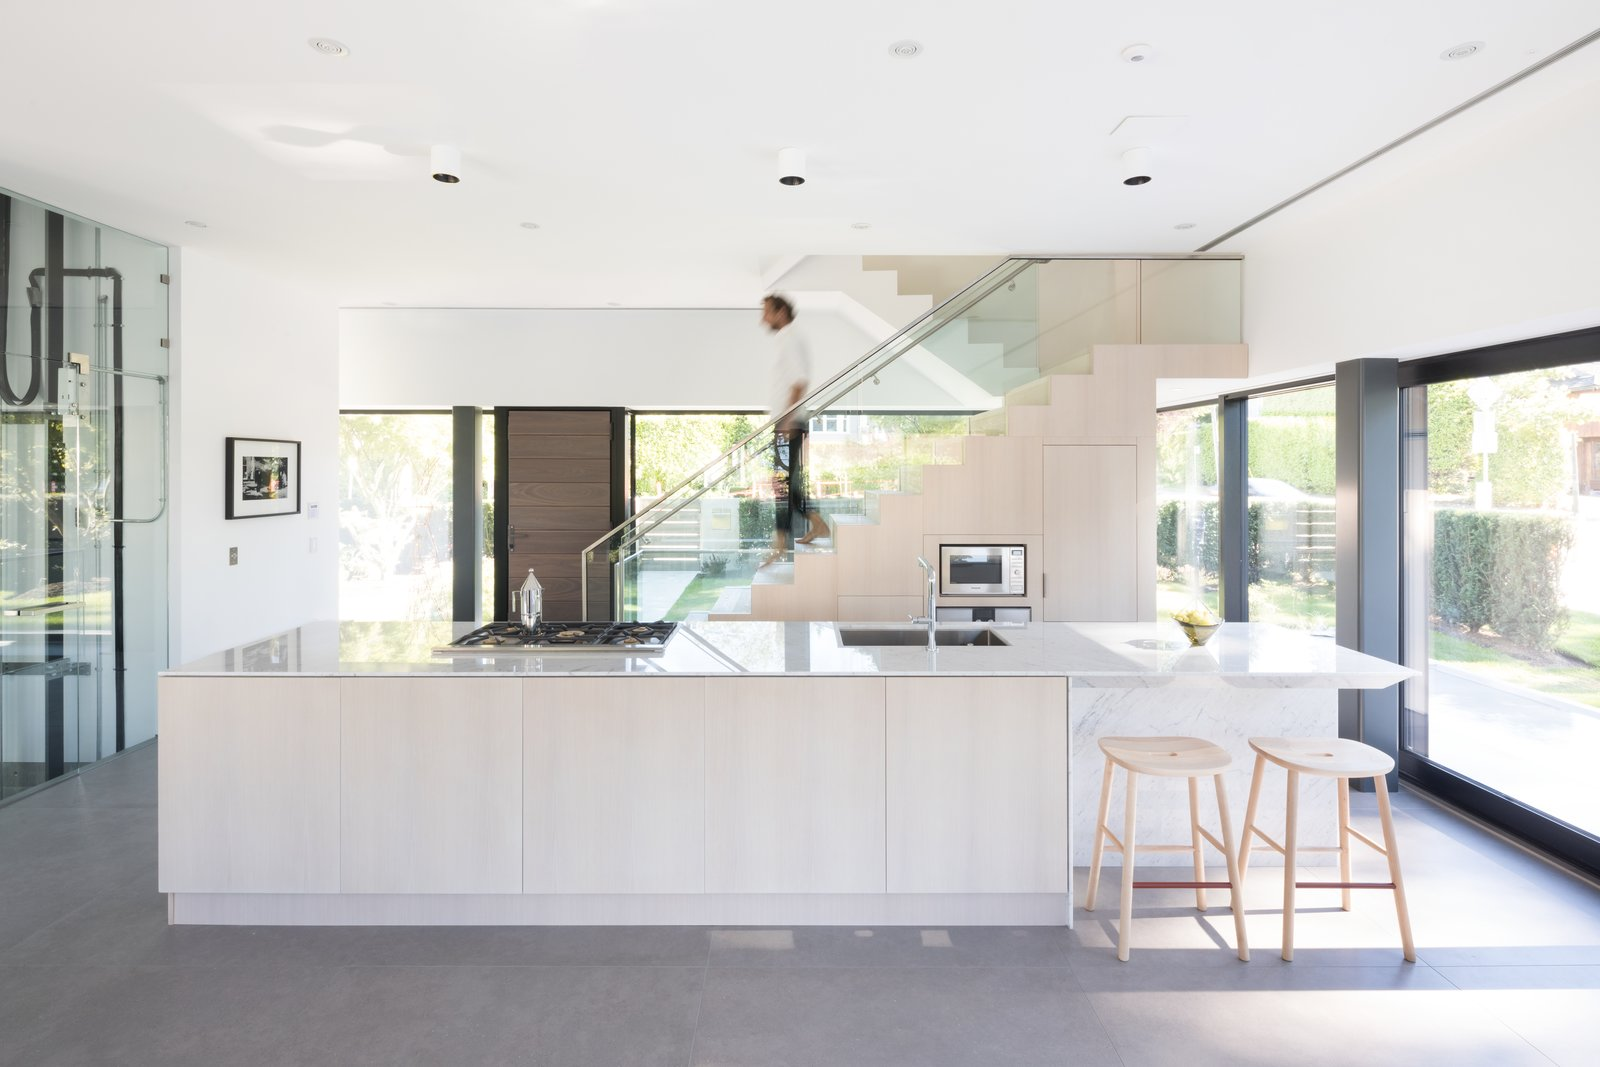 Kitchen, Wood Cabinet, Marble Counter, Range, Undermount Sink, Microwave, and Recessed Lighting  Photo 5 of 12 in Wrapped in Galvanized Steel, 'Cube House' in Vancouver Asks $12.8M